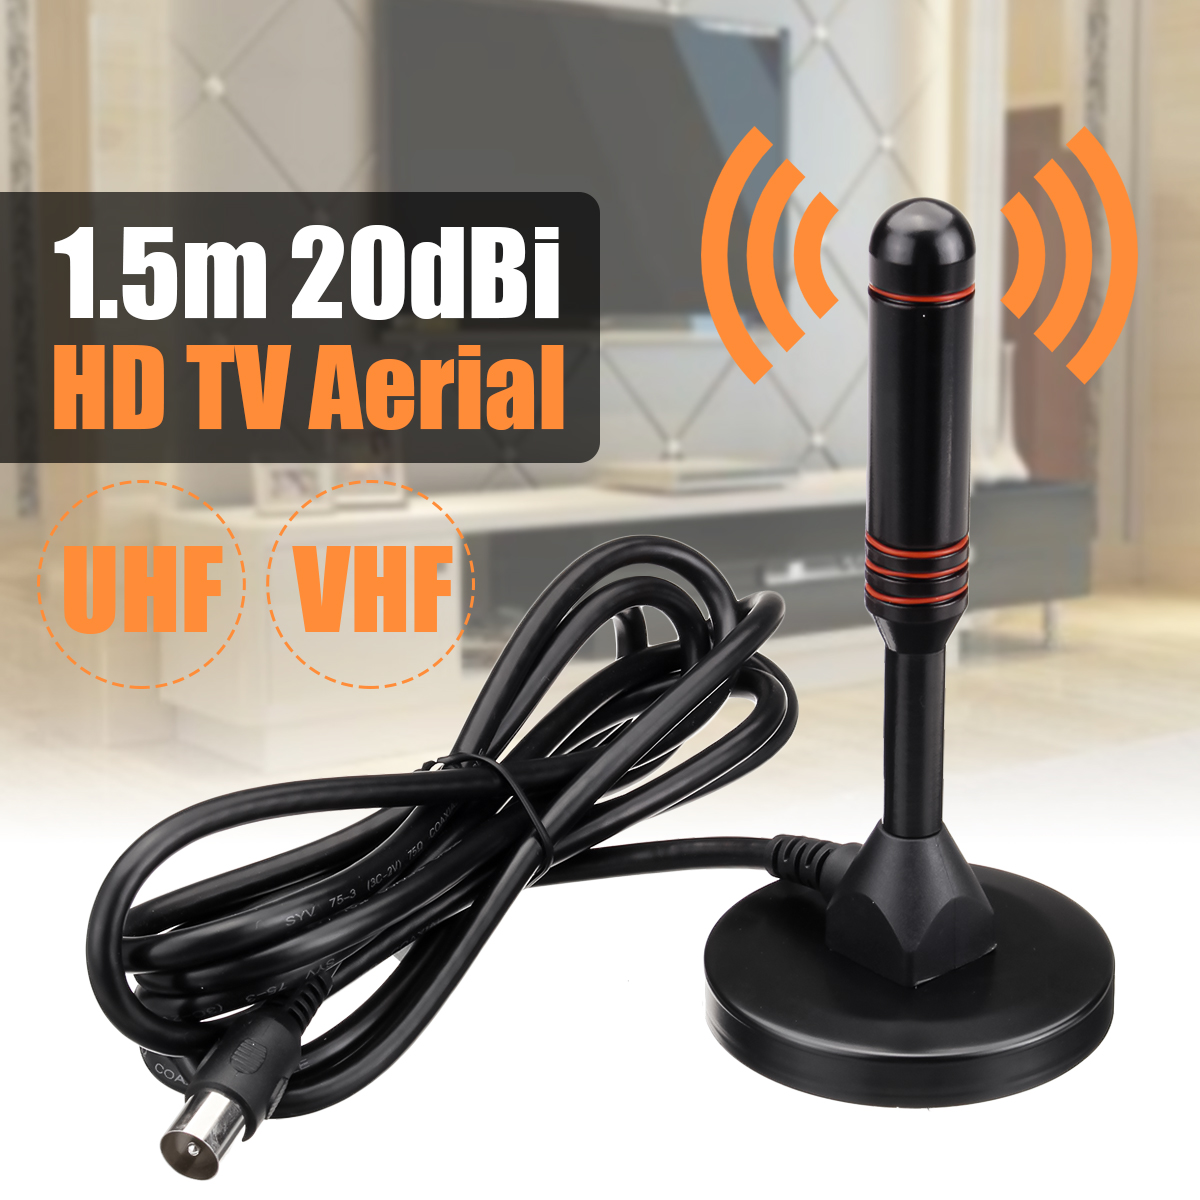 Indoor 20dBi High Gain Freeview Digital DVB-T / DAB HDTV TV Aerial Antenna